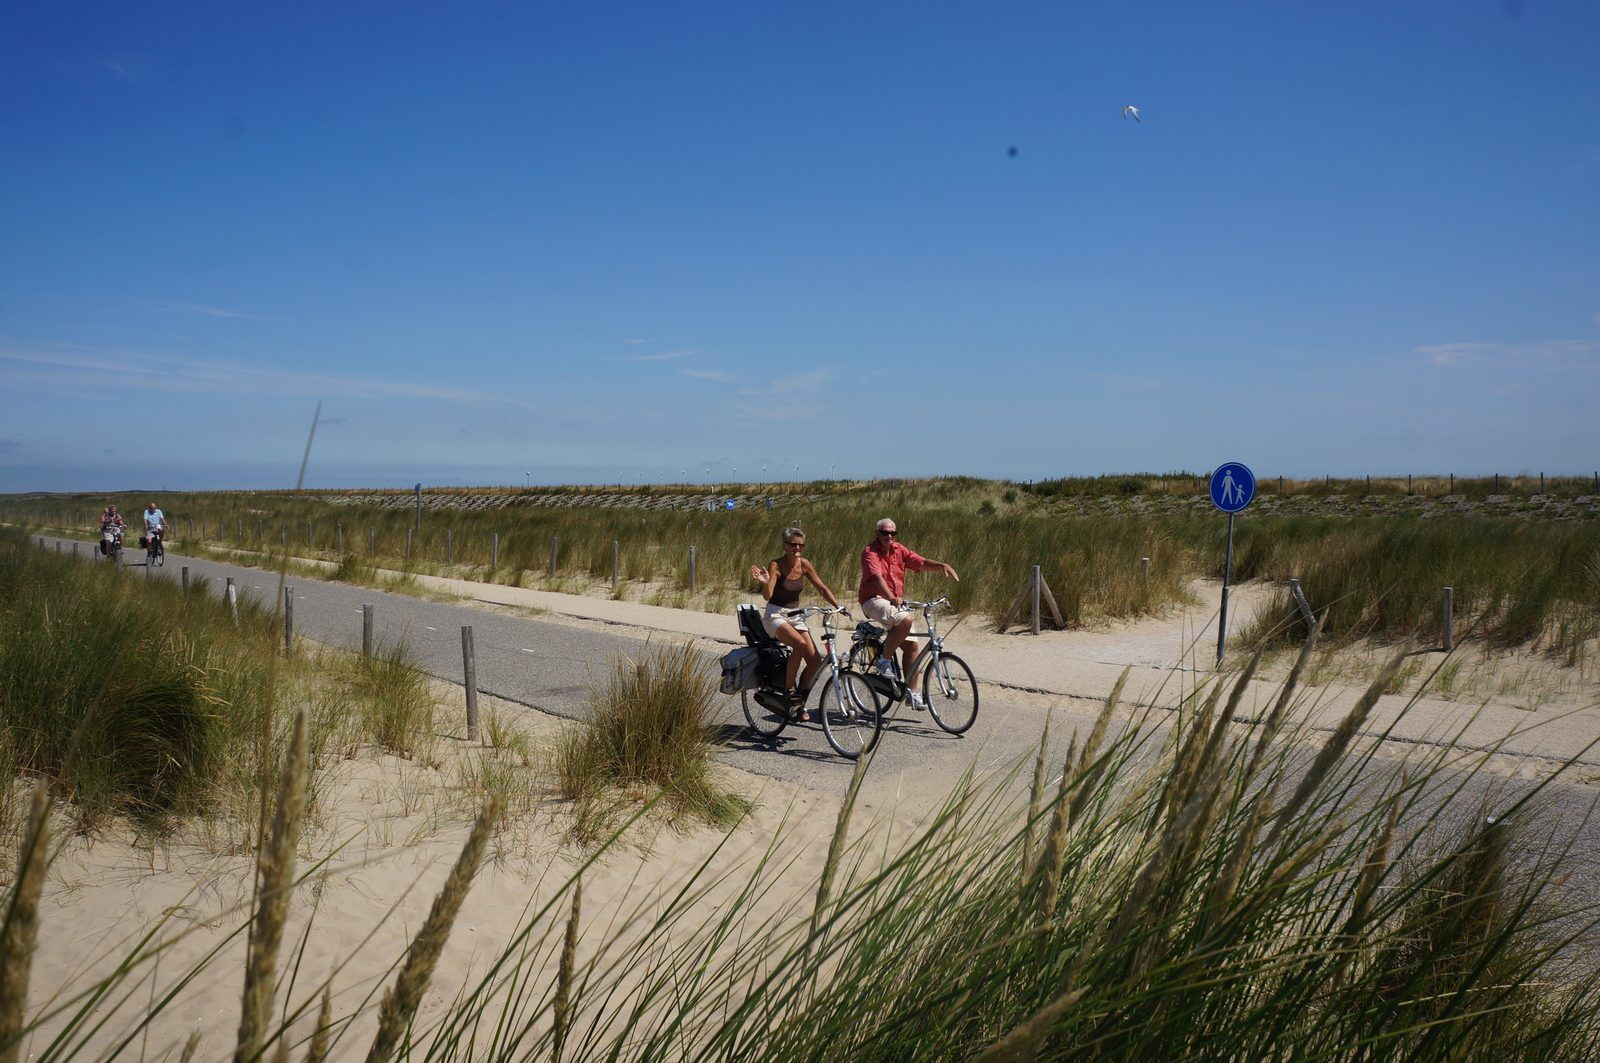 Take a look at the holiday homes in the dunes